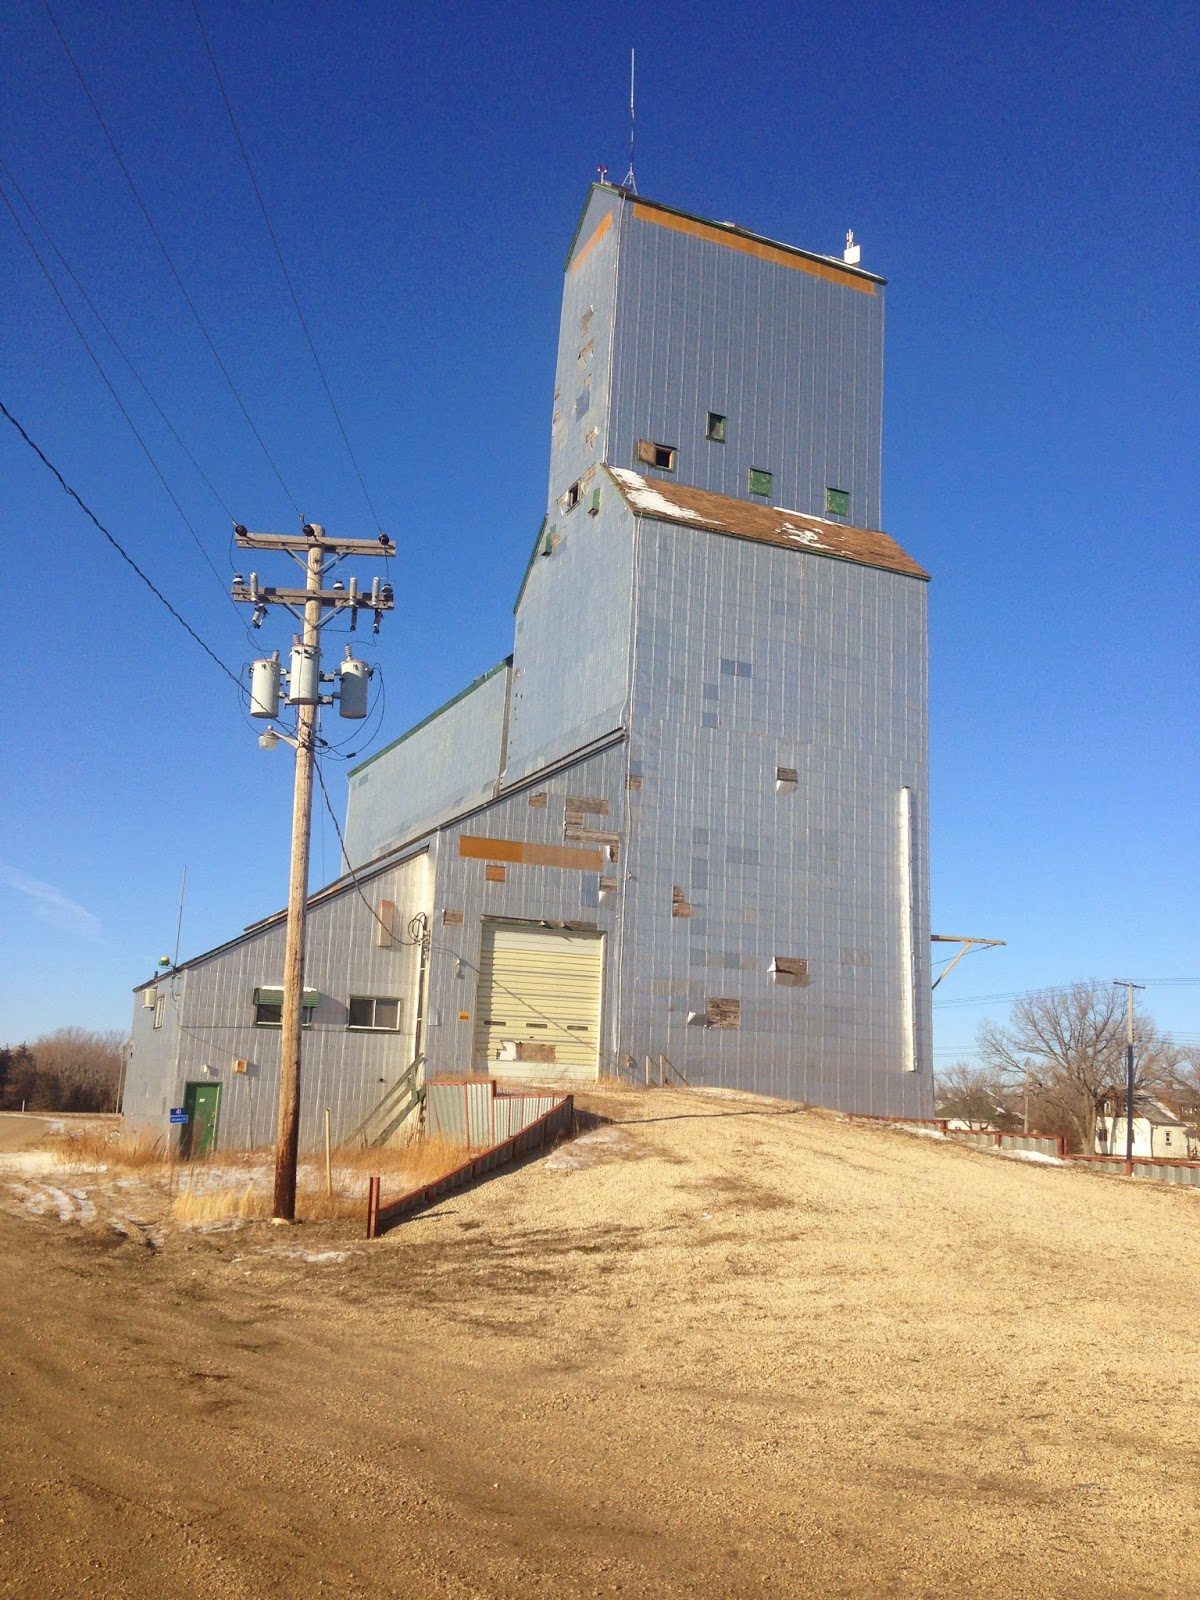 Royal lepage carman grain elevator for sale in lowe farm Elevators for sale